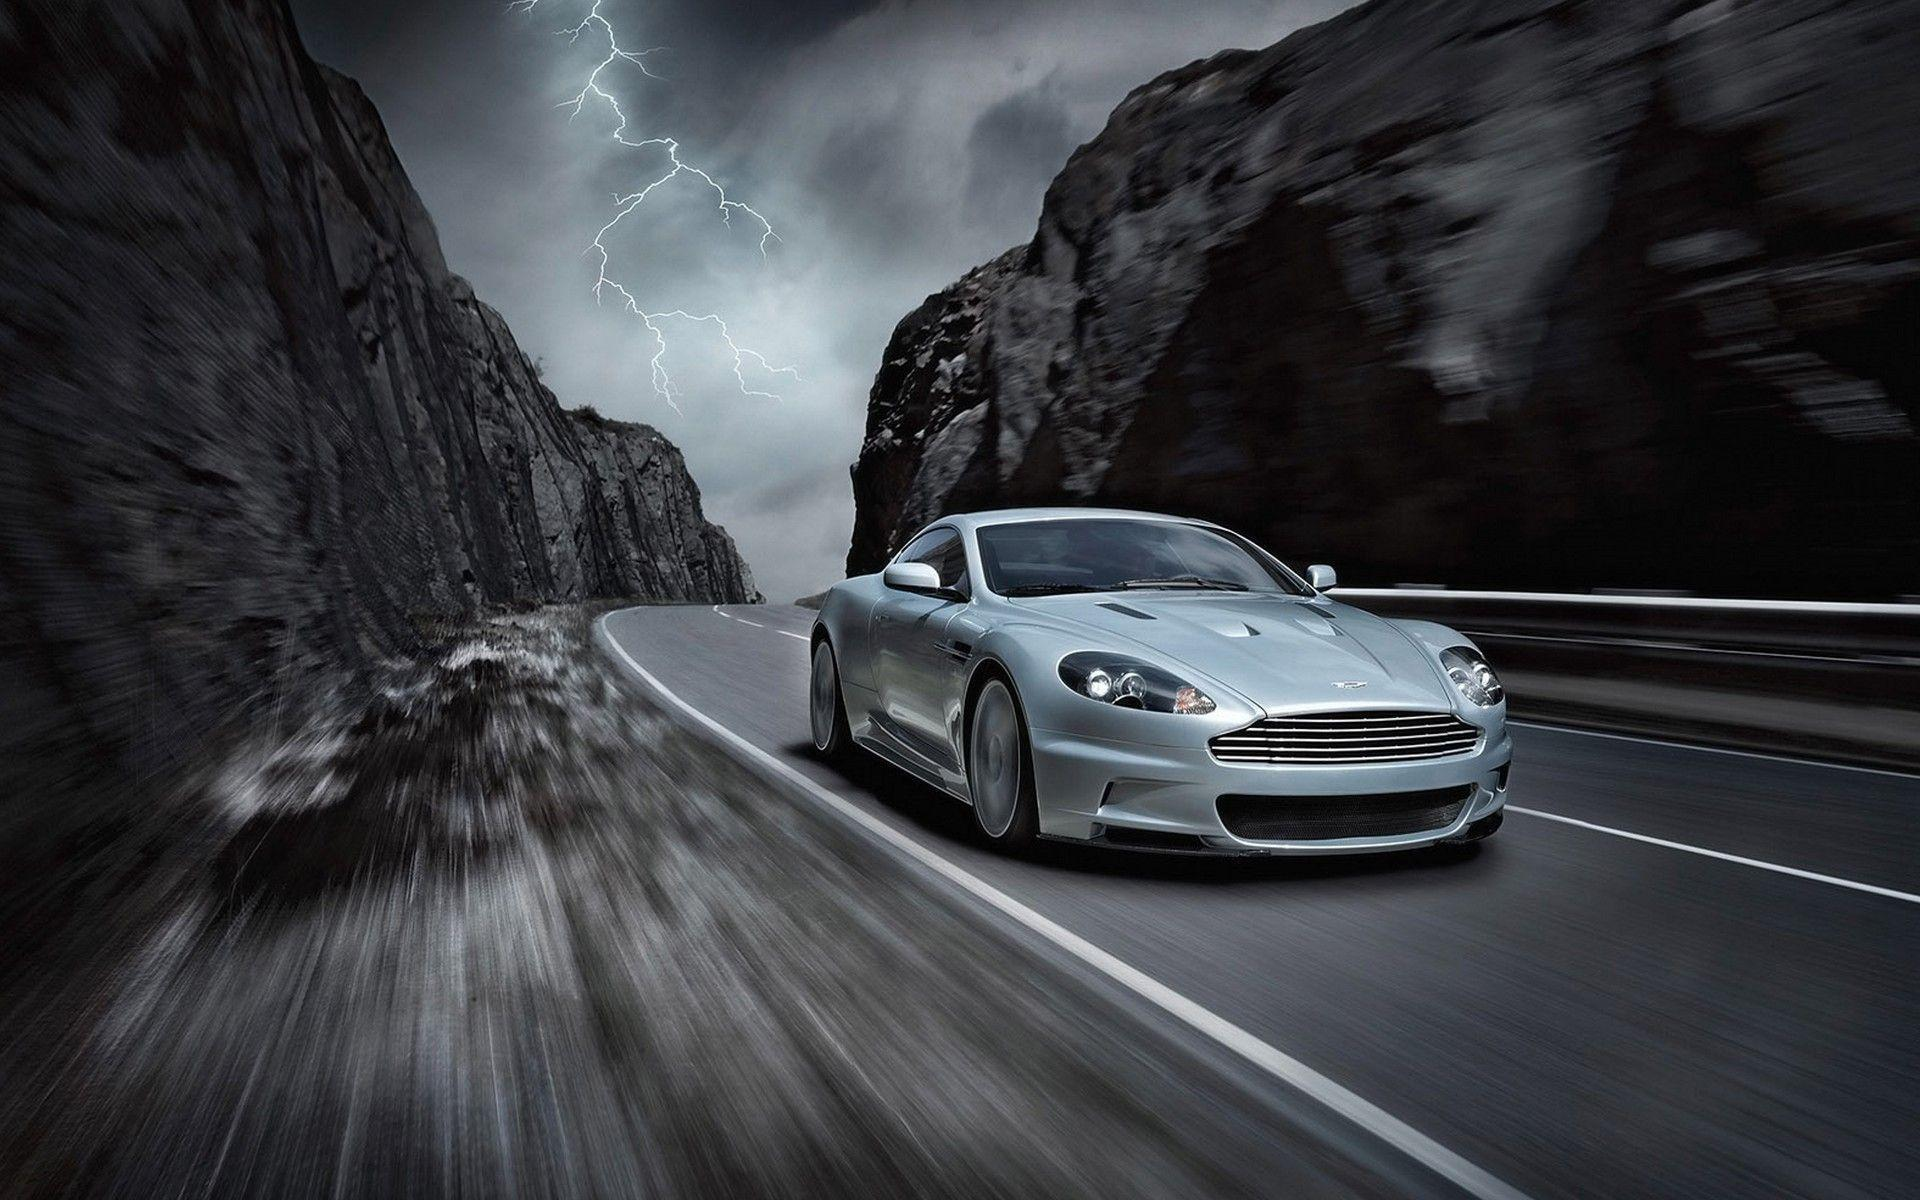 aston martin dbs wallpapers - wallpaper cave